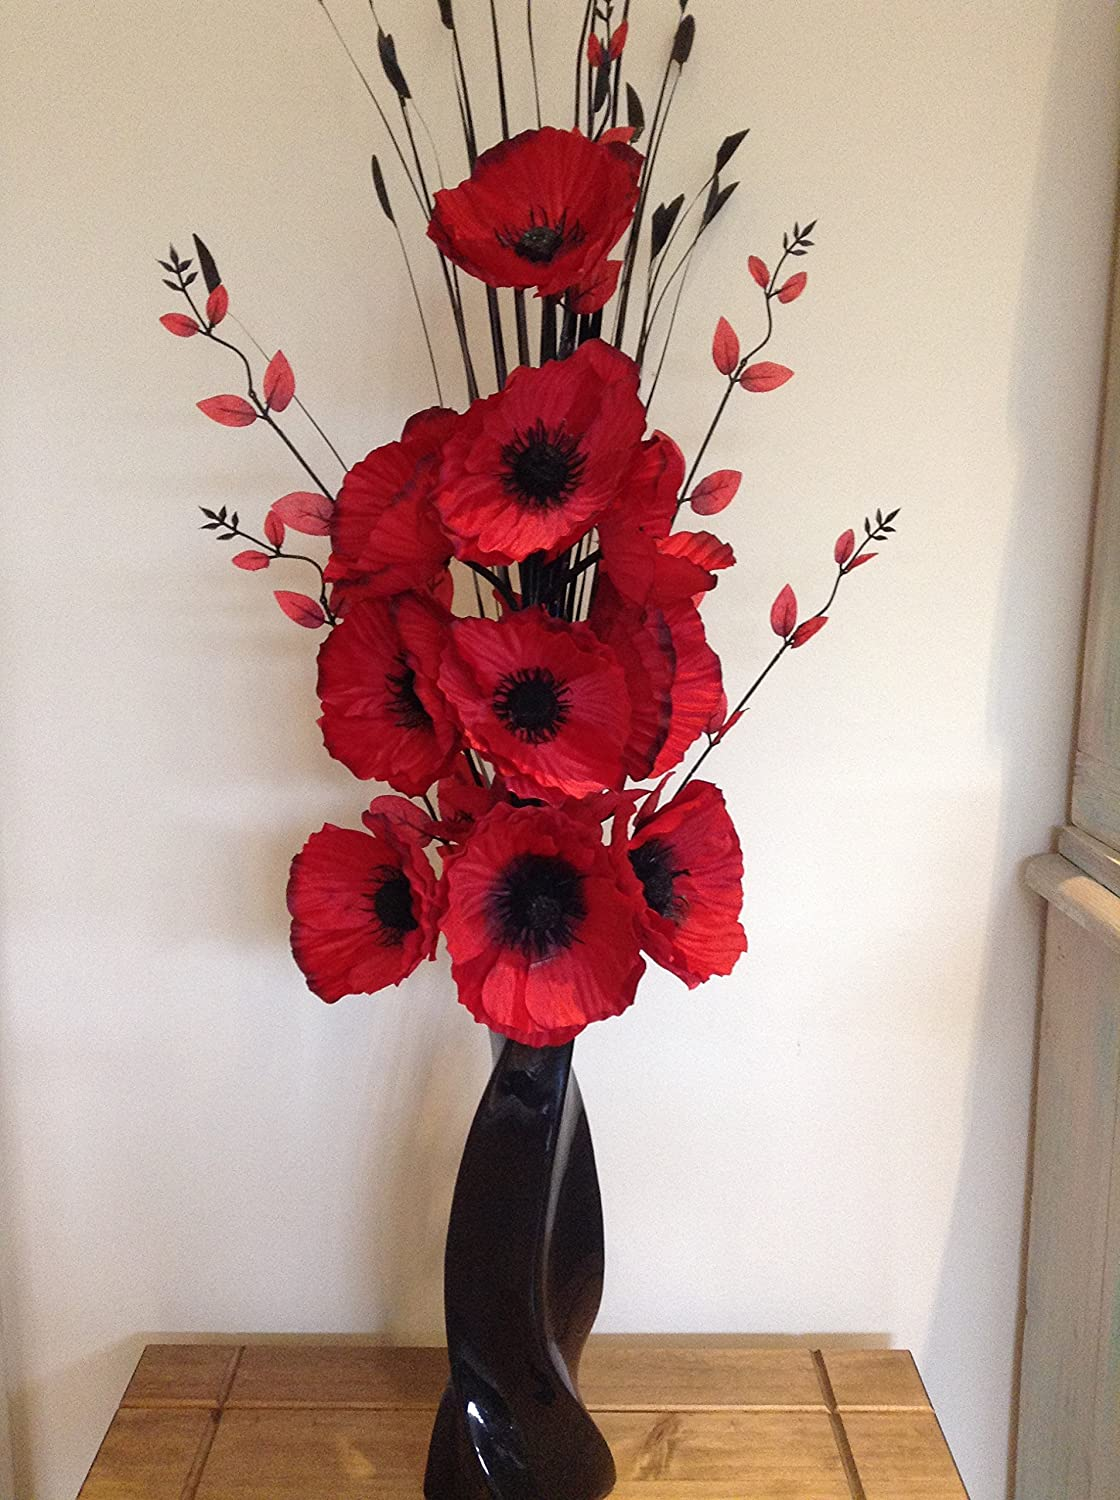 Artificial silk flower arrangement in red poppies in black modern artificial silk flower arrangement in red poppies in black modern vase amazon kitchen home mightylinksfo